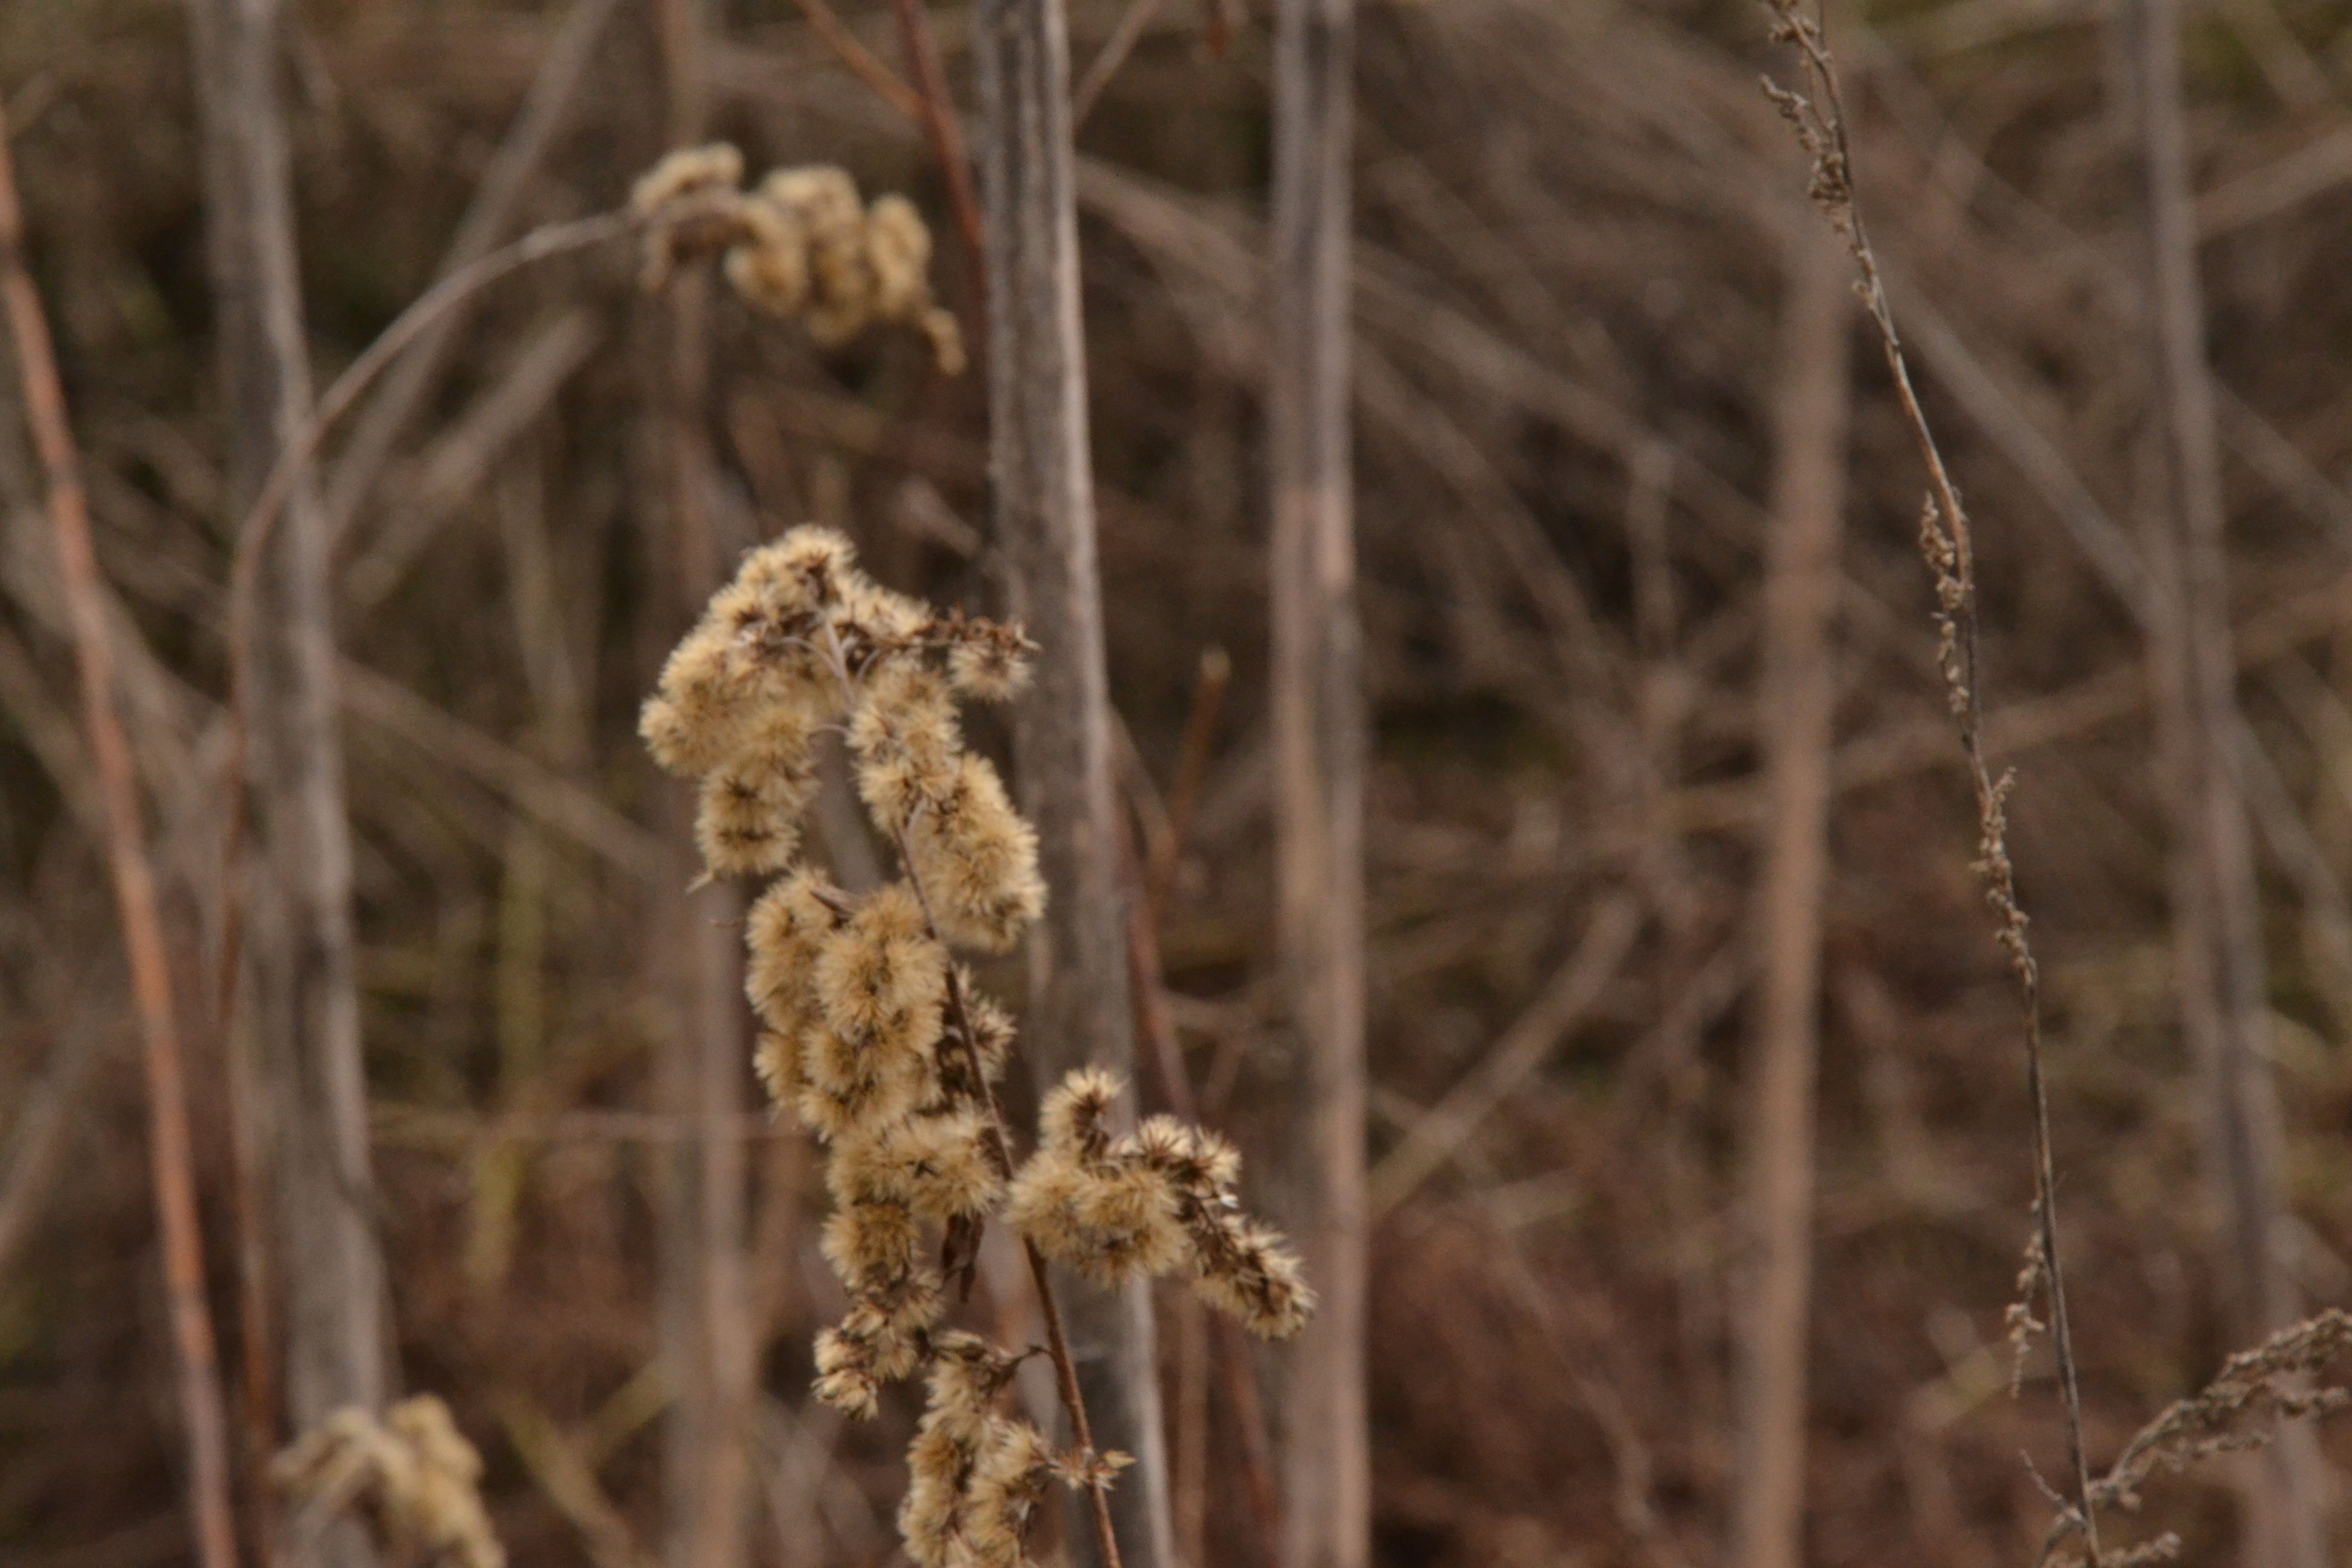 nature, focus on foreground, plant, growth, no people, tranquility, cattail, beauty in nature, day, close-up, outdoors, dried plant